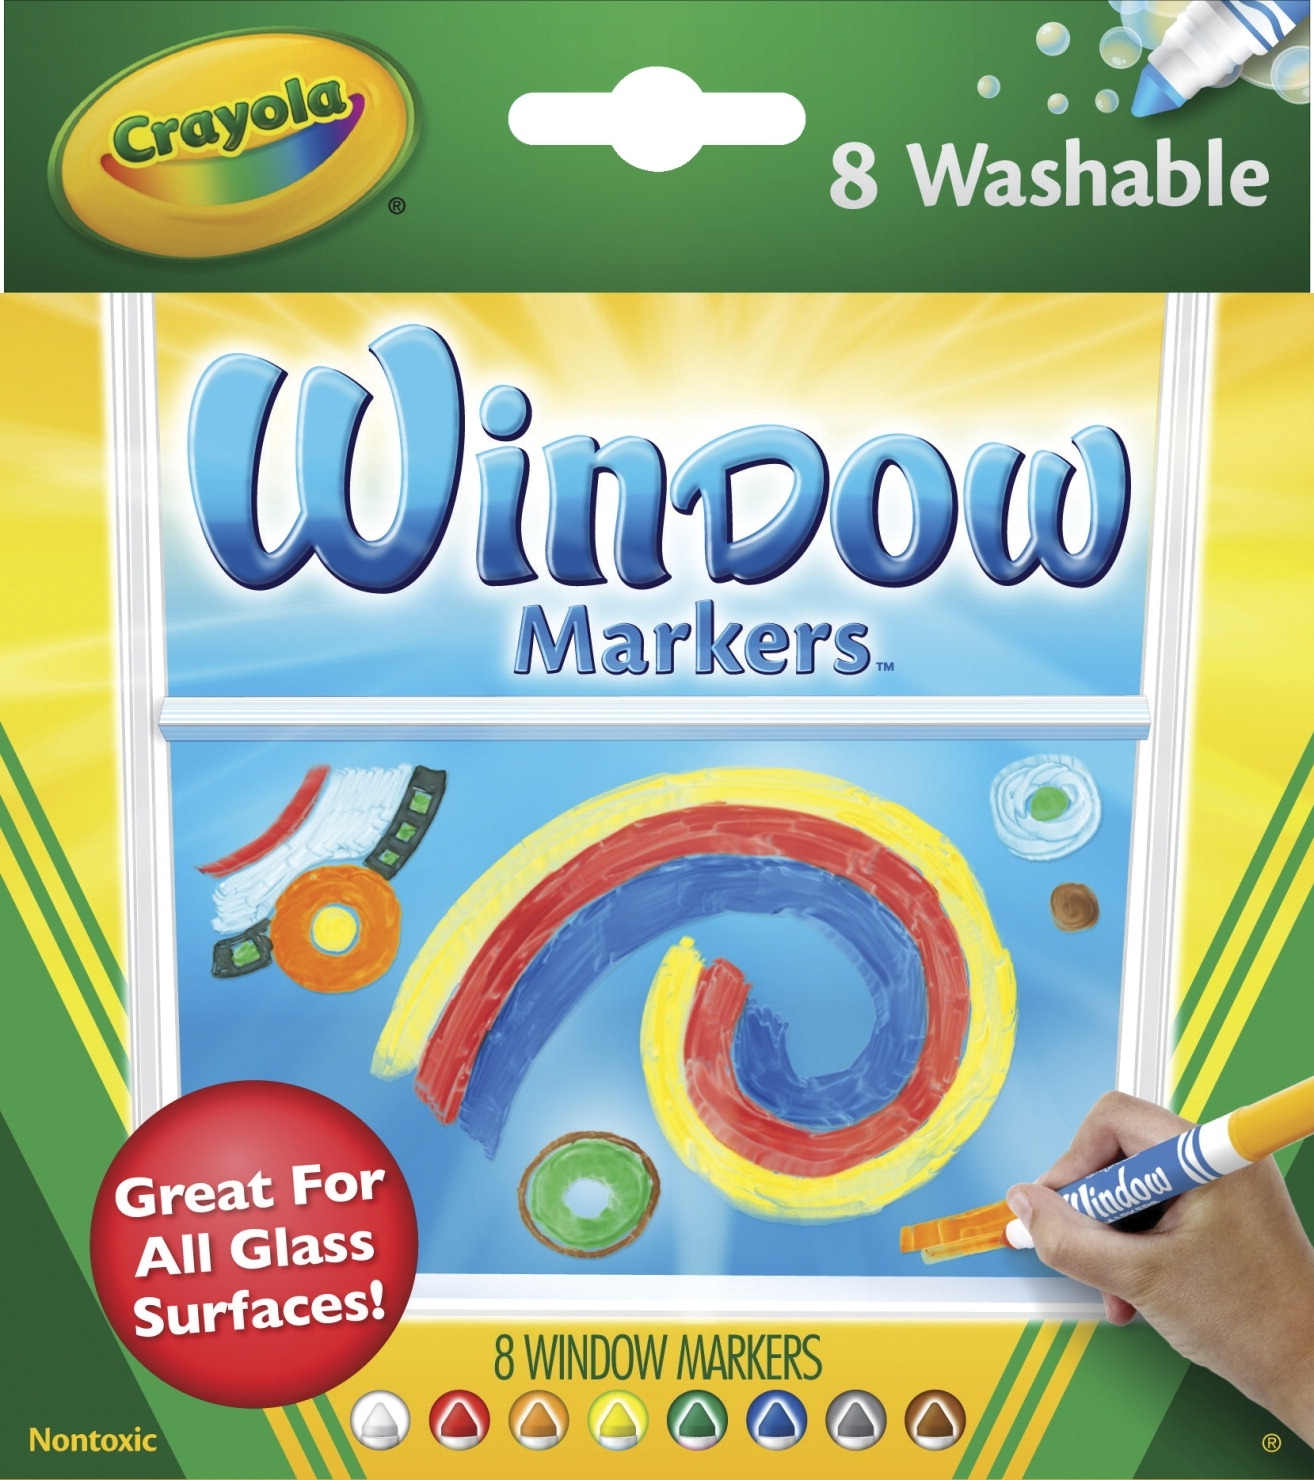 Learning: Supplies Drawing Markers Washable Markers - 402359 - Crayola Standard Non-toxic Washable Window Marker; 1/2 In Extra-wide Tip; Assorted Vibrant Colors; Pack Of 8 402359